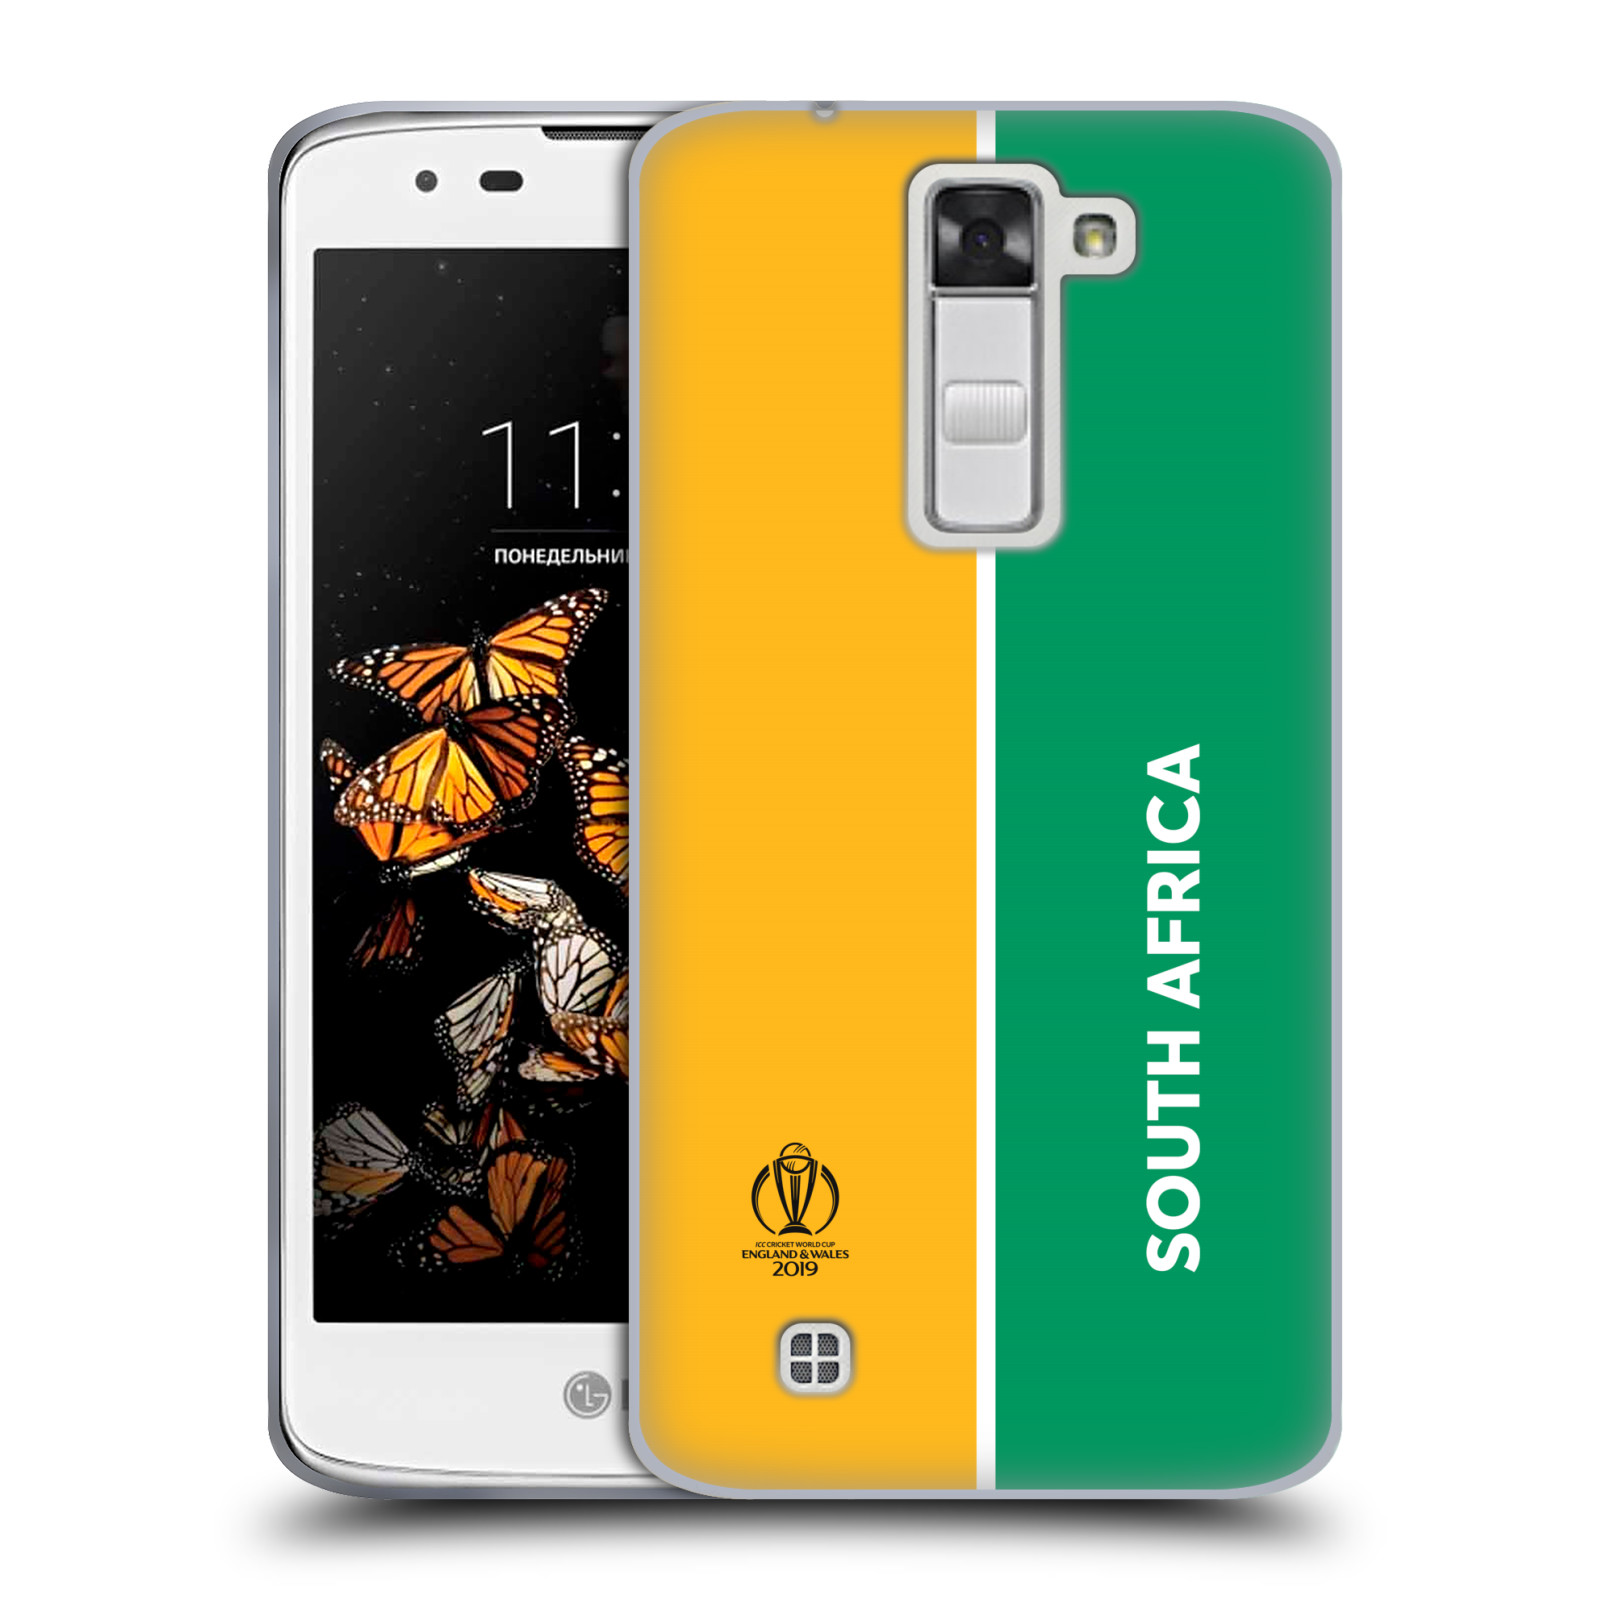 OFFICIAL-ICC-SOUTH-AFRICA-SOFT-GEL-CASE-FOR-LG-PHONES-2